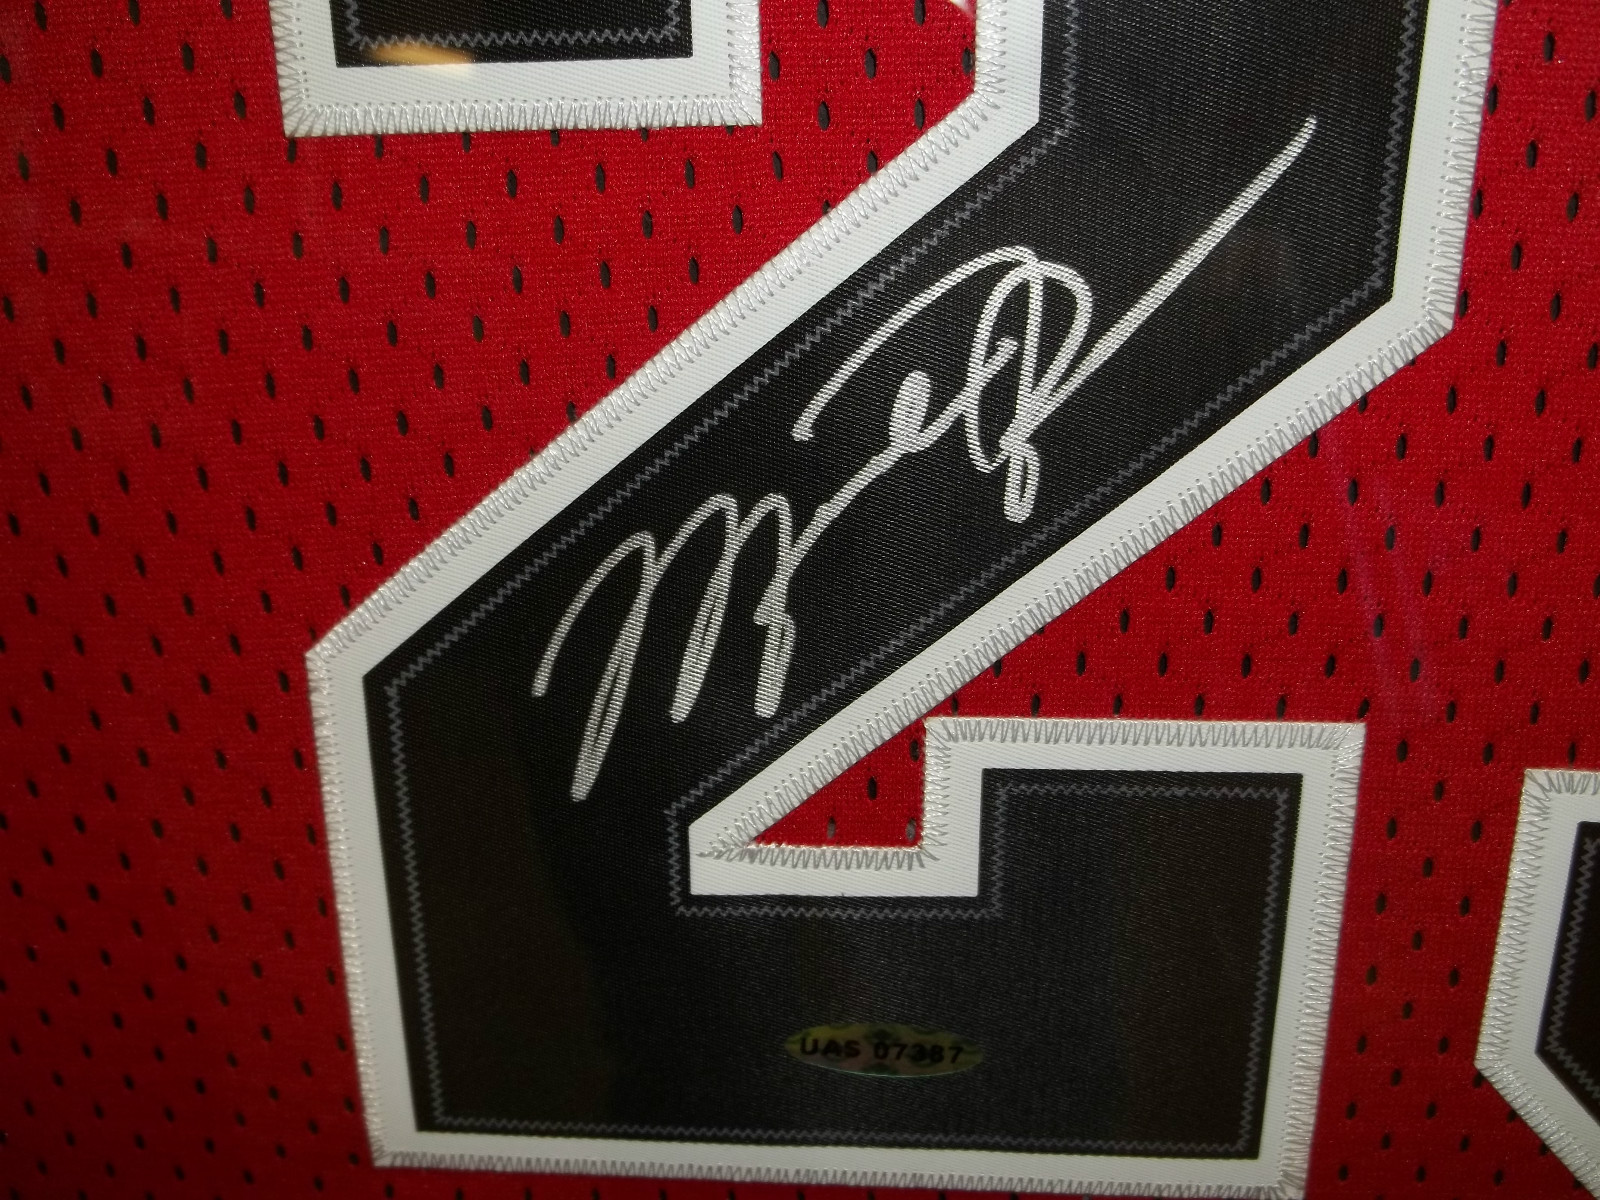 3474291b9 Signed Jersey Pricing  Active Listings for Michael Jordan Signed Jerseys